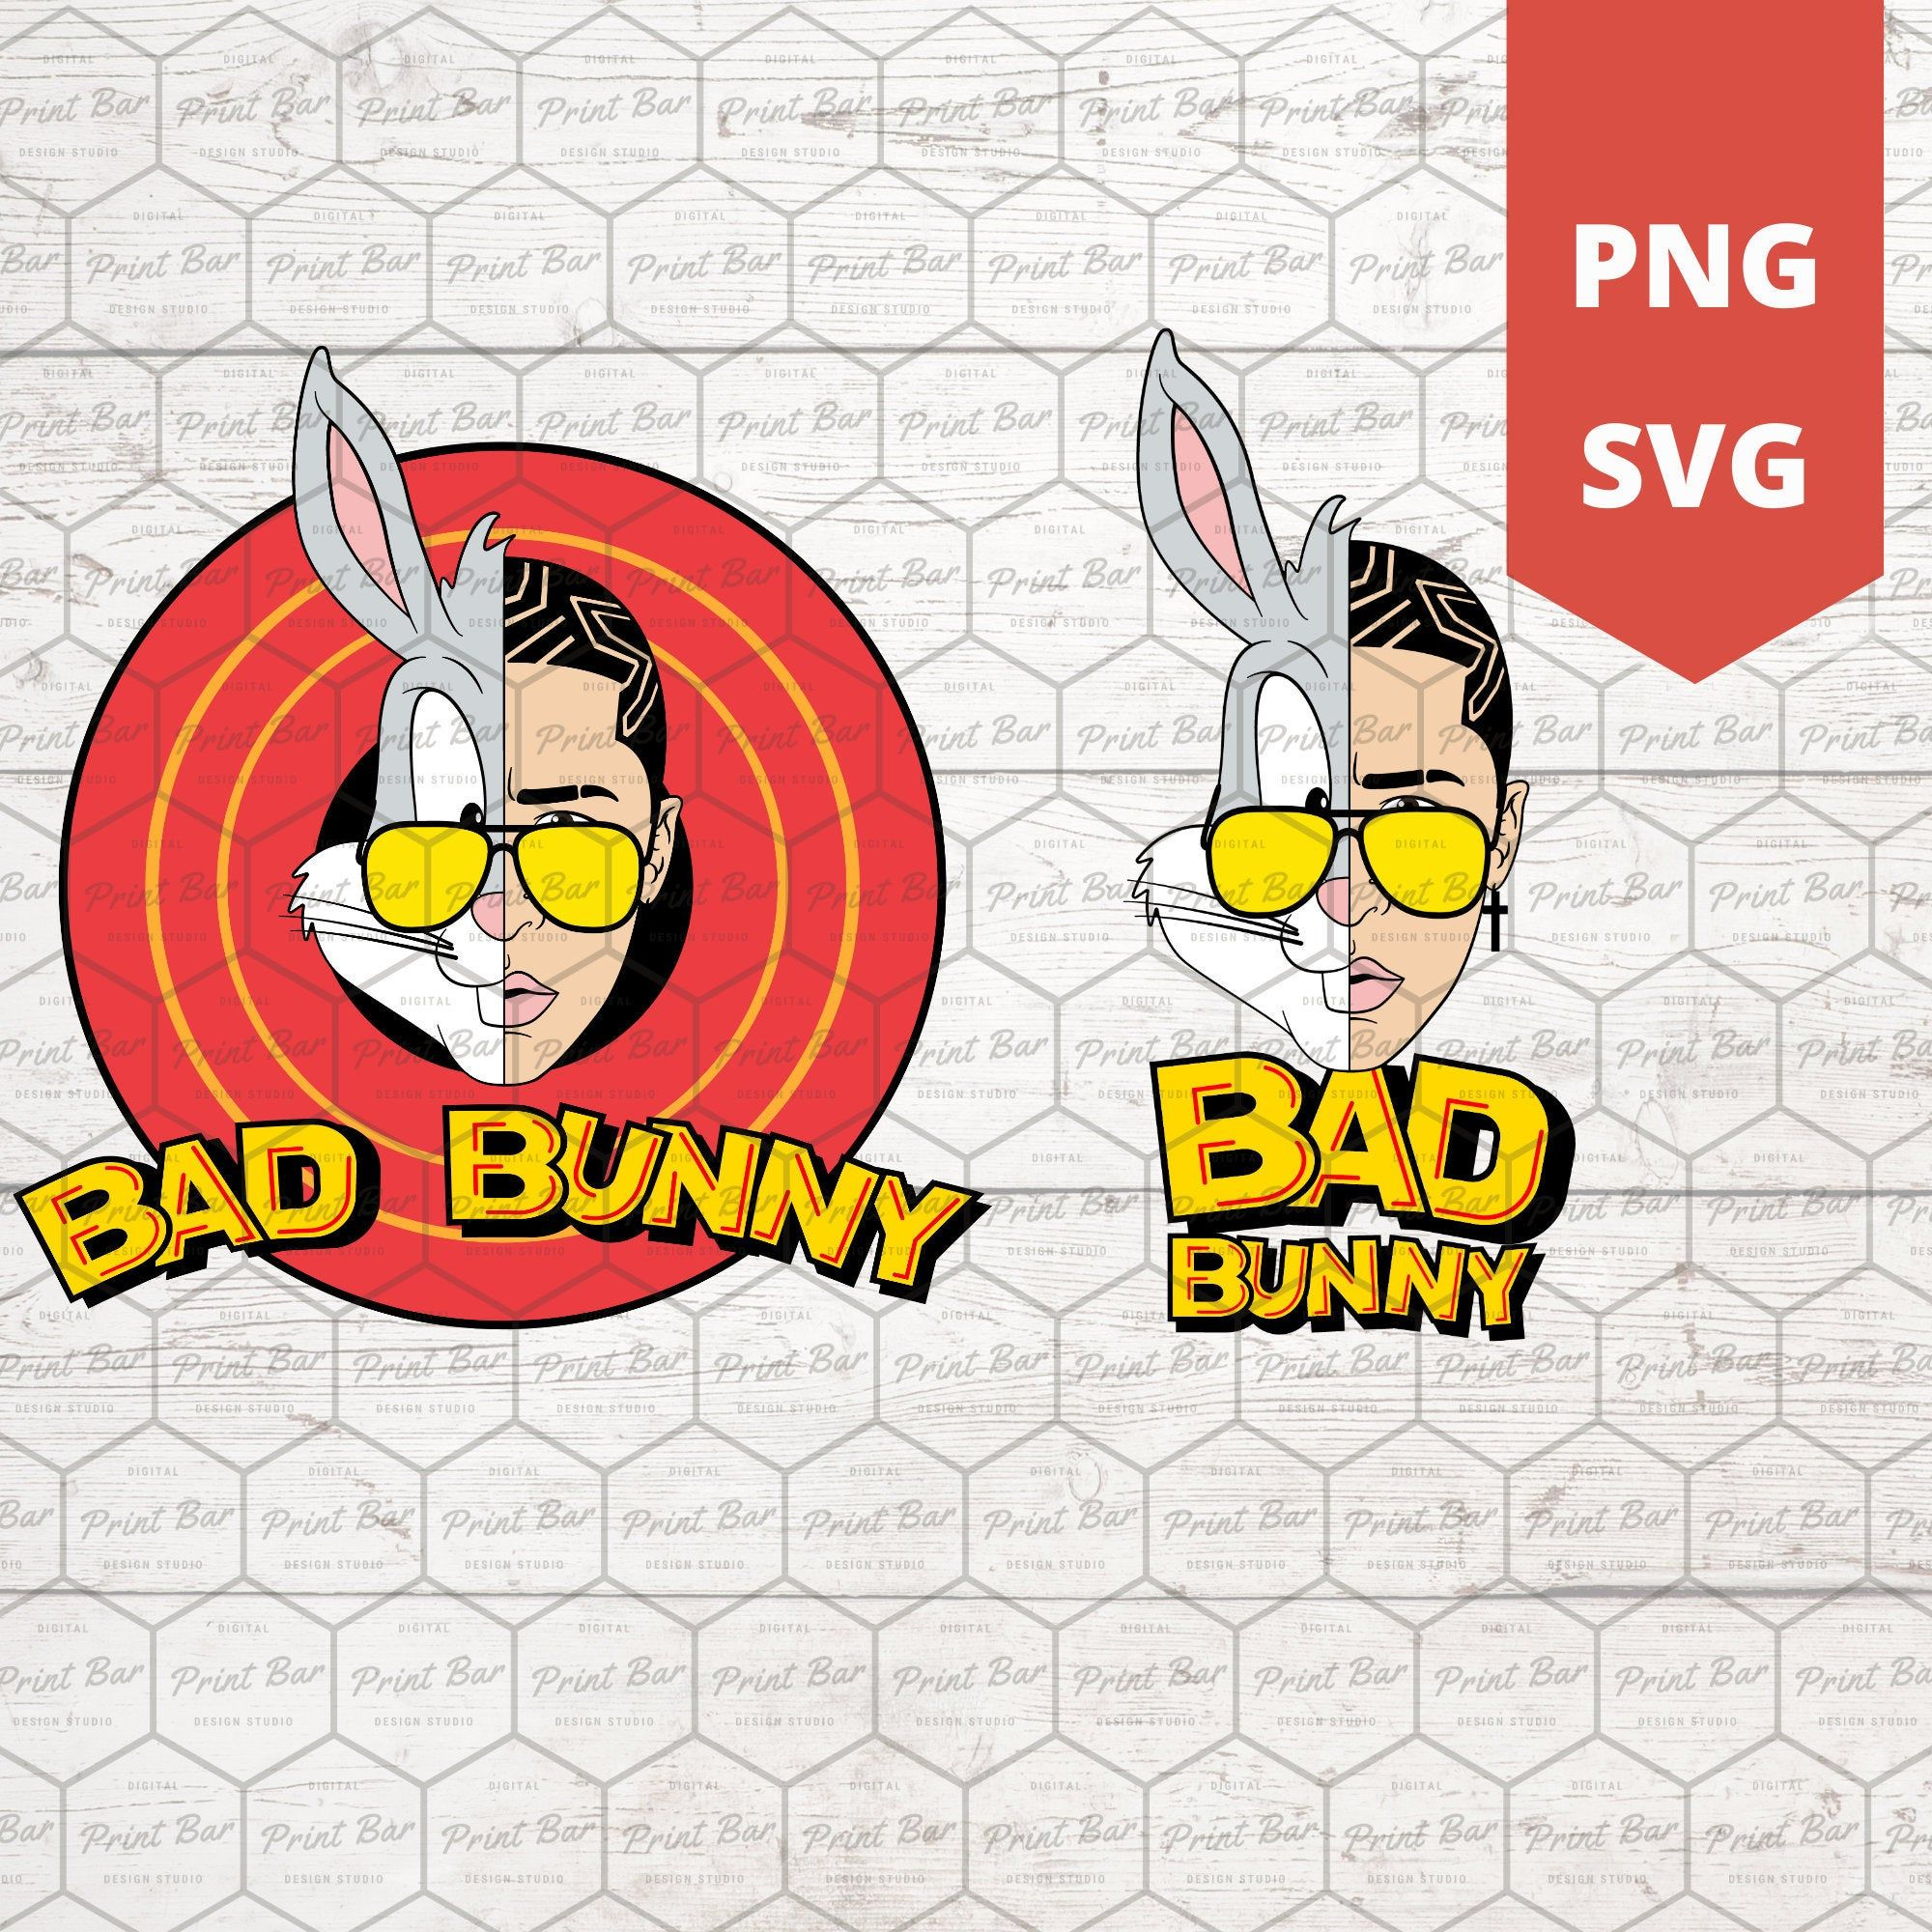 Bugs Bad Bunny Svg Png Etsy In 2021 Bunny Svg Bunny Drawing Bunny Birthday Theme